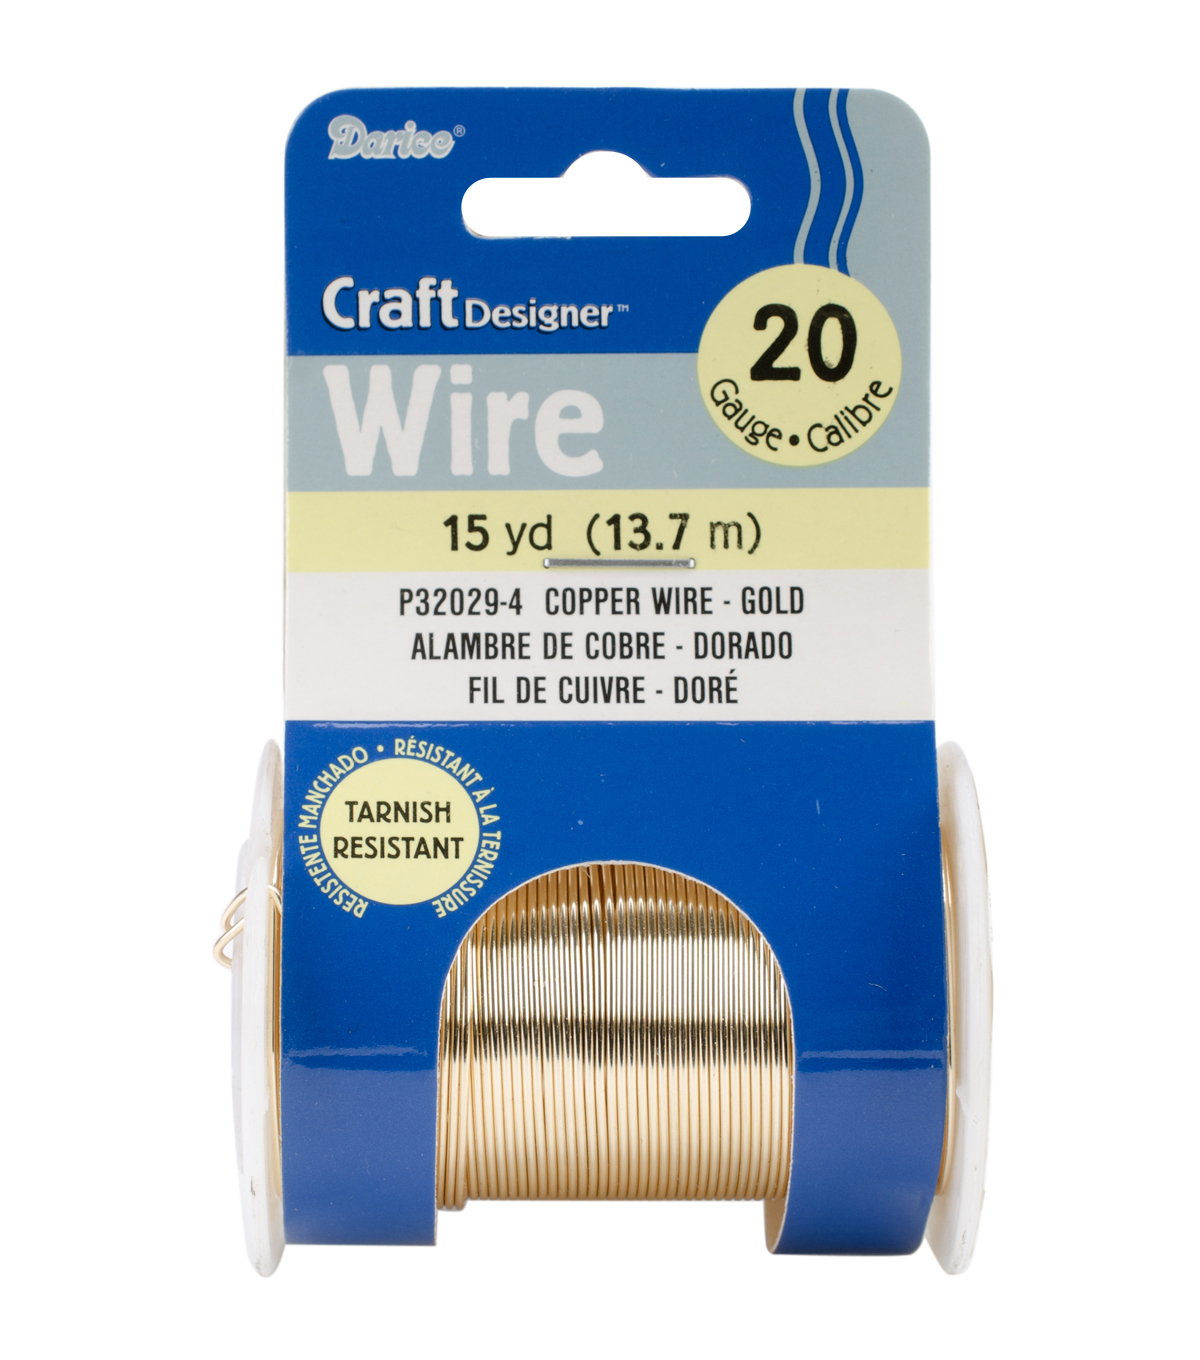 Beading wire 20 gauge 15ydpkg gold colored copper wire joann beading wire 20 gauge 15ydpkg gold colored copper wire greentooth Choice Image